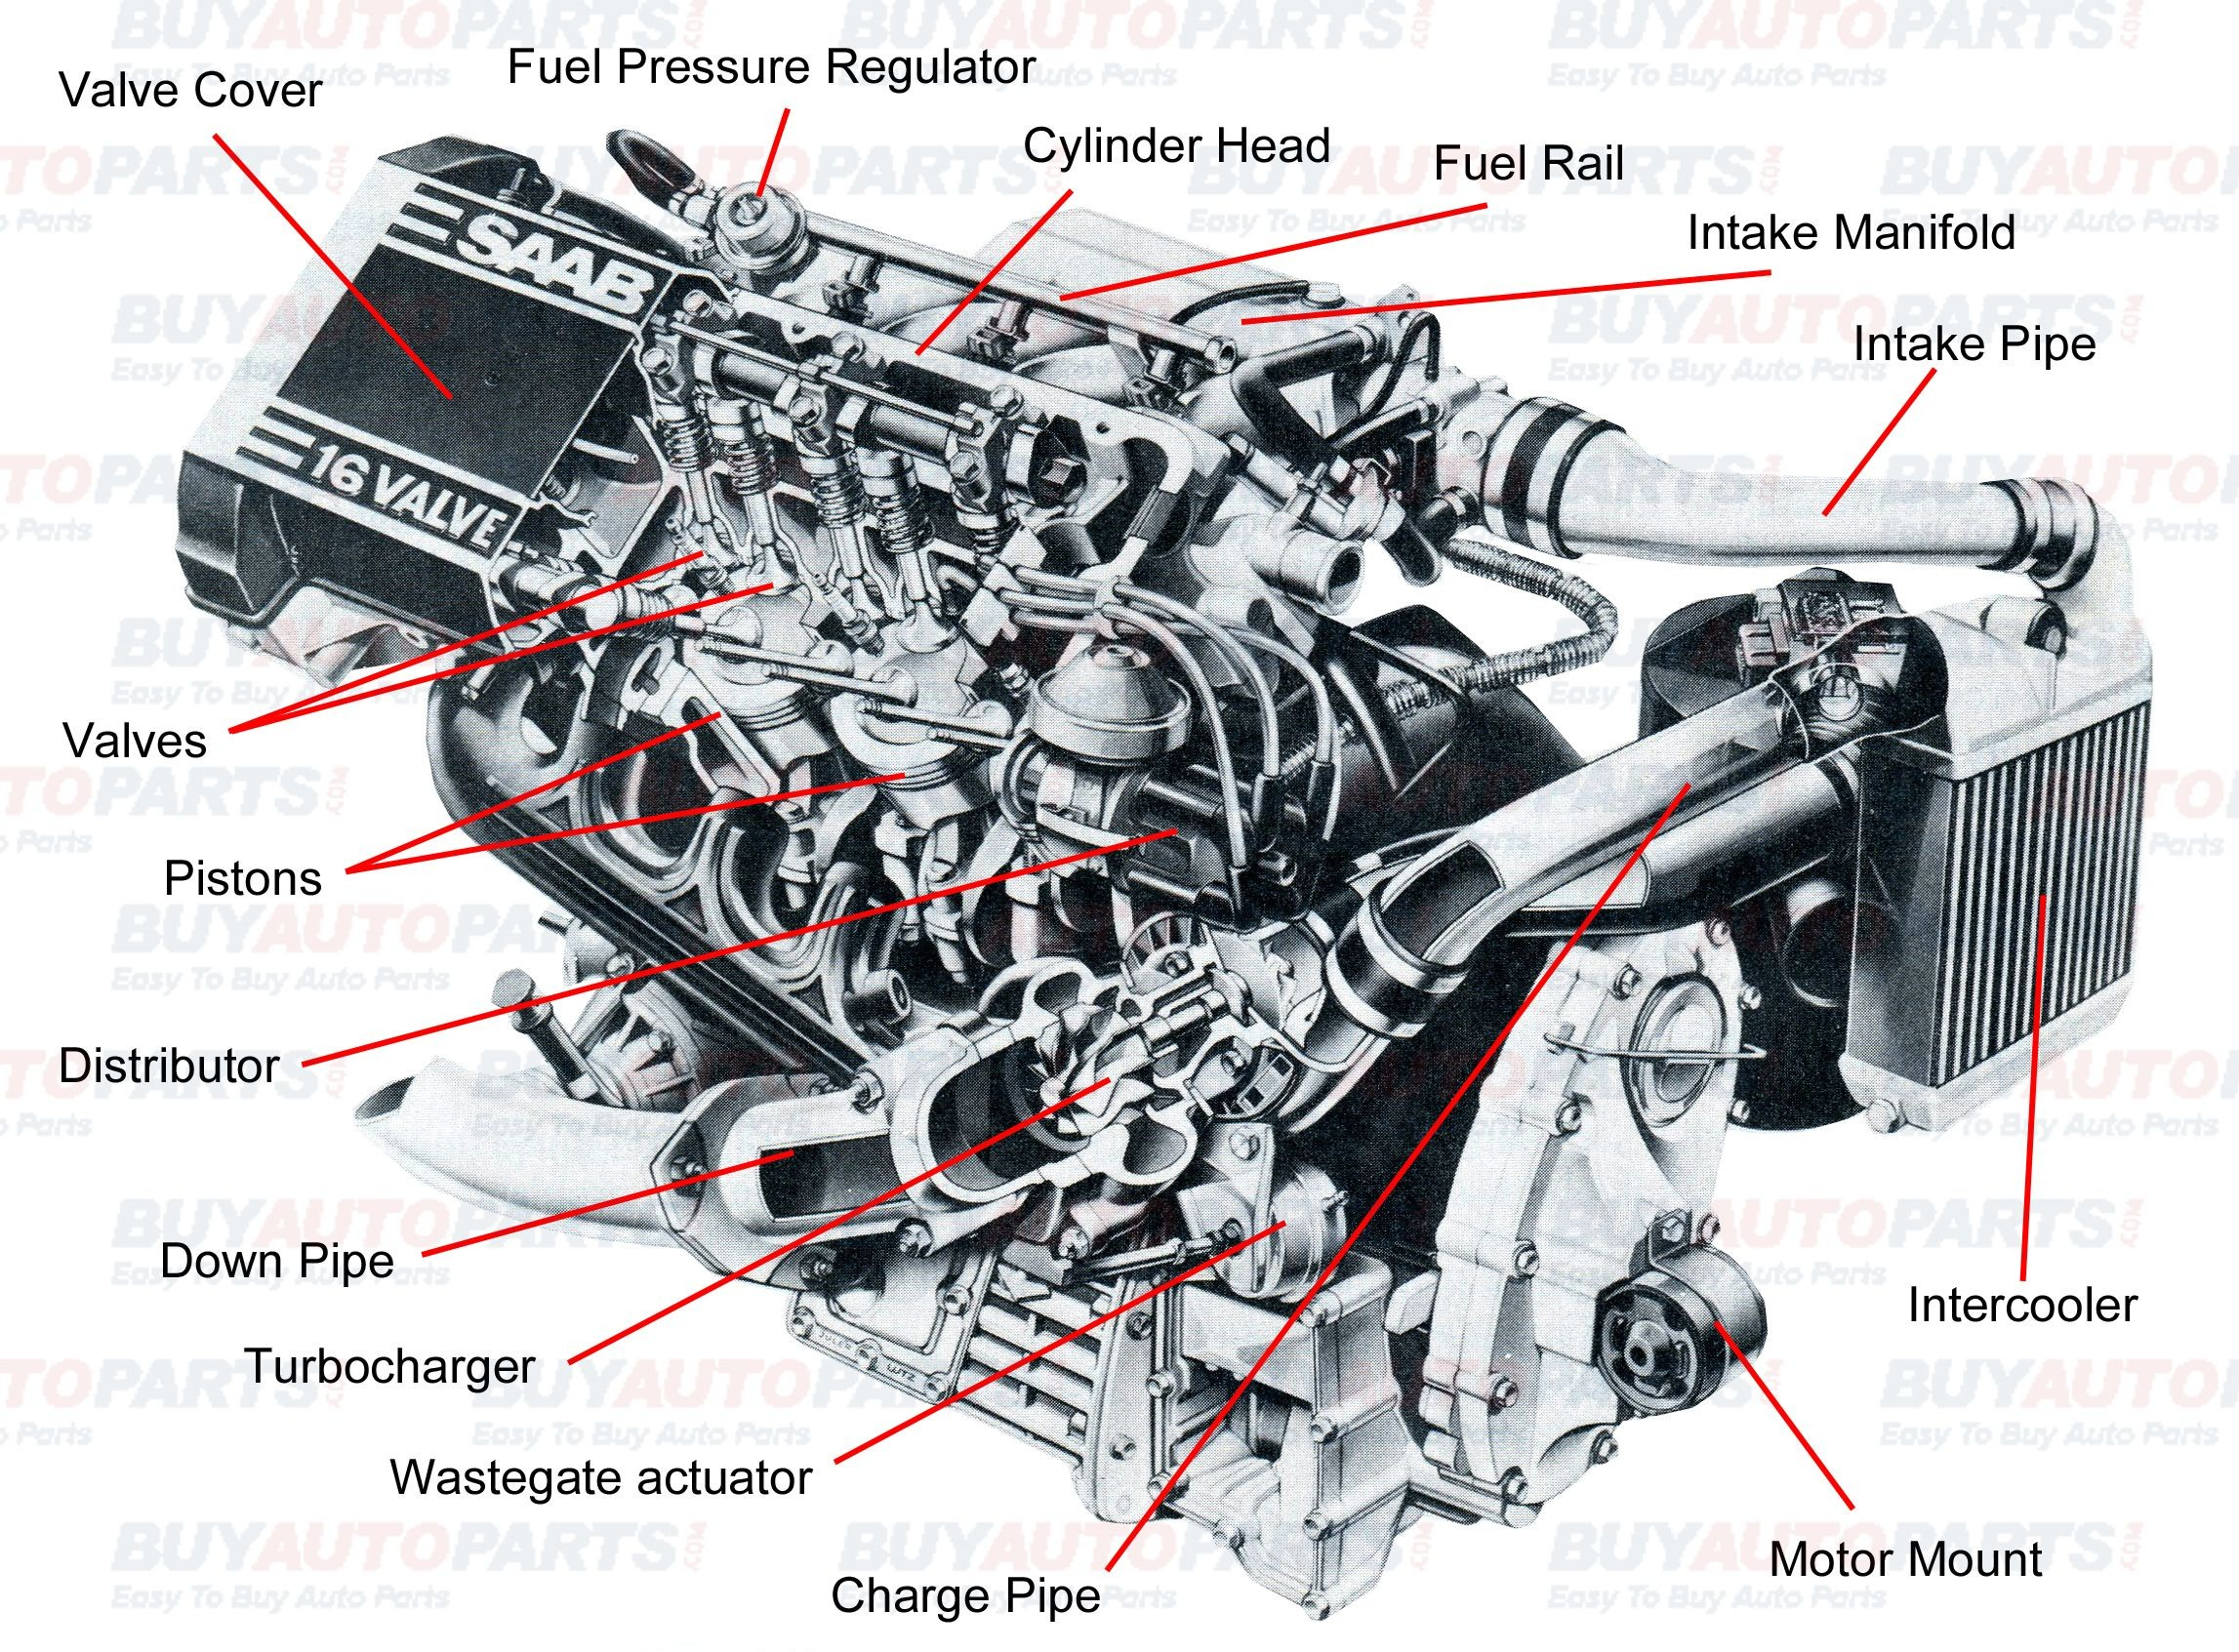 Car Motor Diagram All Internal Bustion Engines Have the Same Basic Ponents the Of Car Motor Diagram